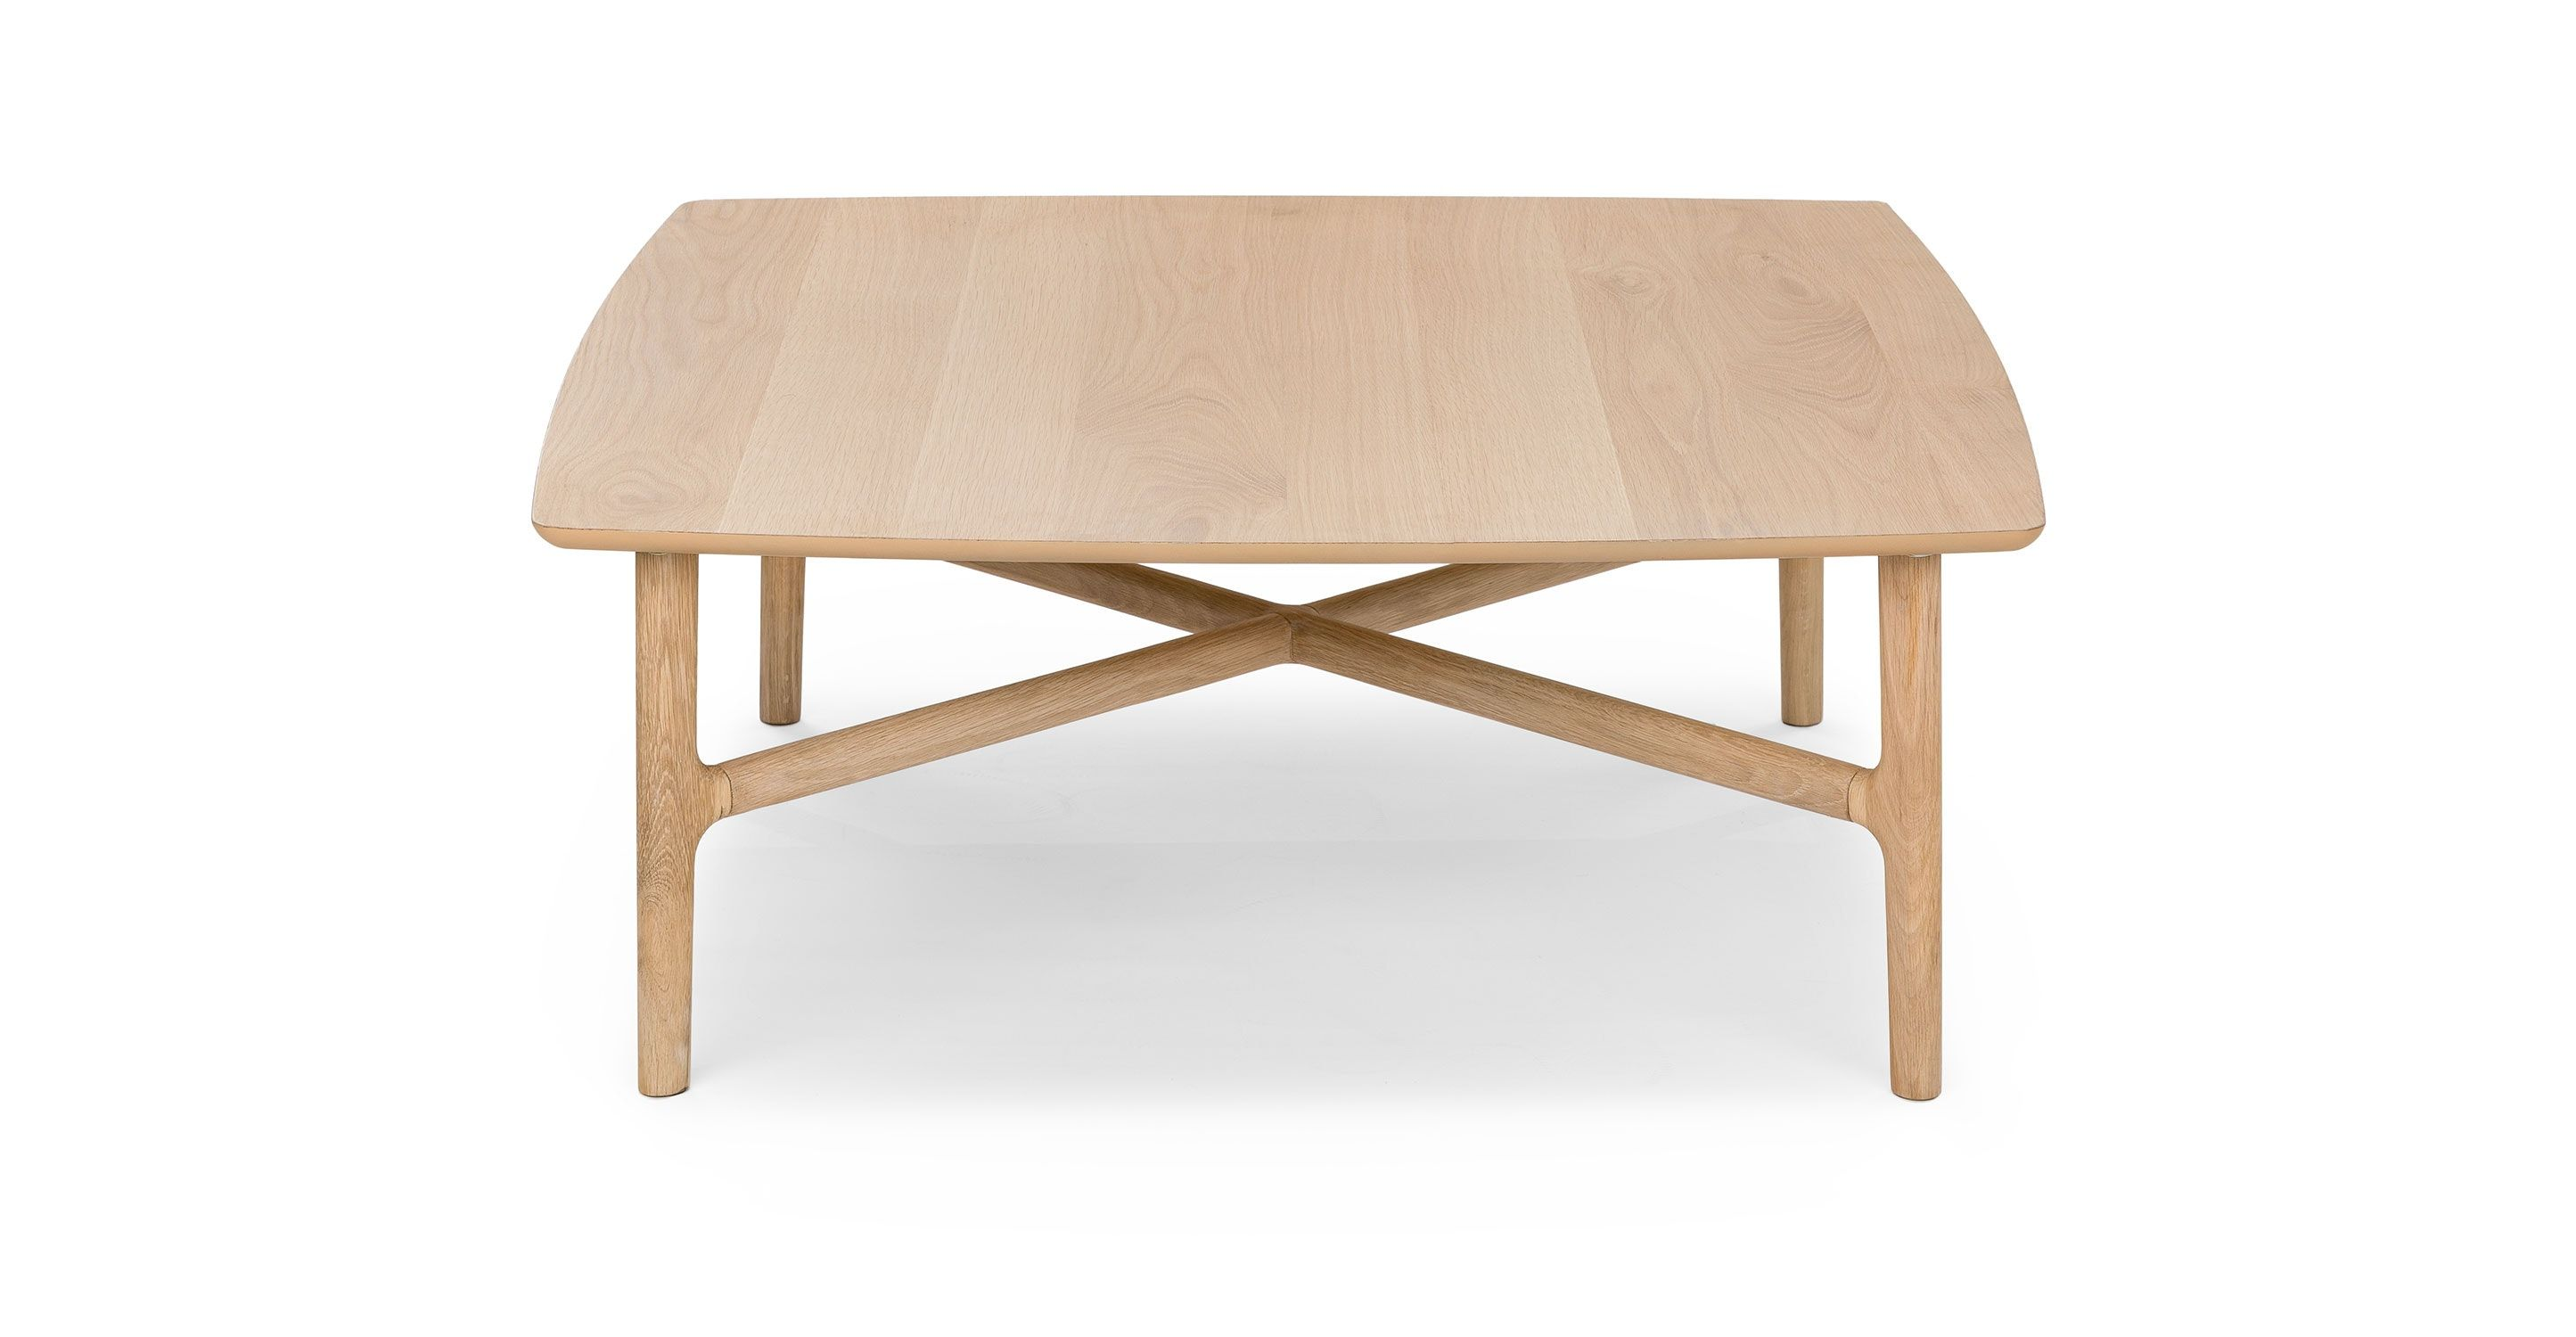 Simple Stylish Timeless The Brezza Is The Coffee Table Equivalent To A Crisp White O White Oak Coffee Table Mid Century Modern Coffee Table Oak Coffee Table [ 1500 x 2890 Pixel ]